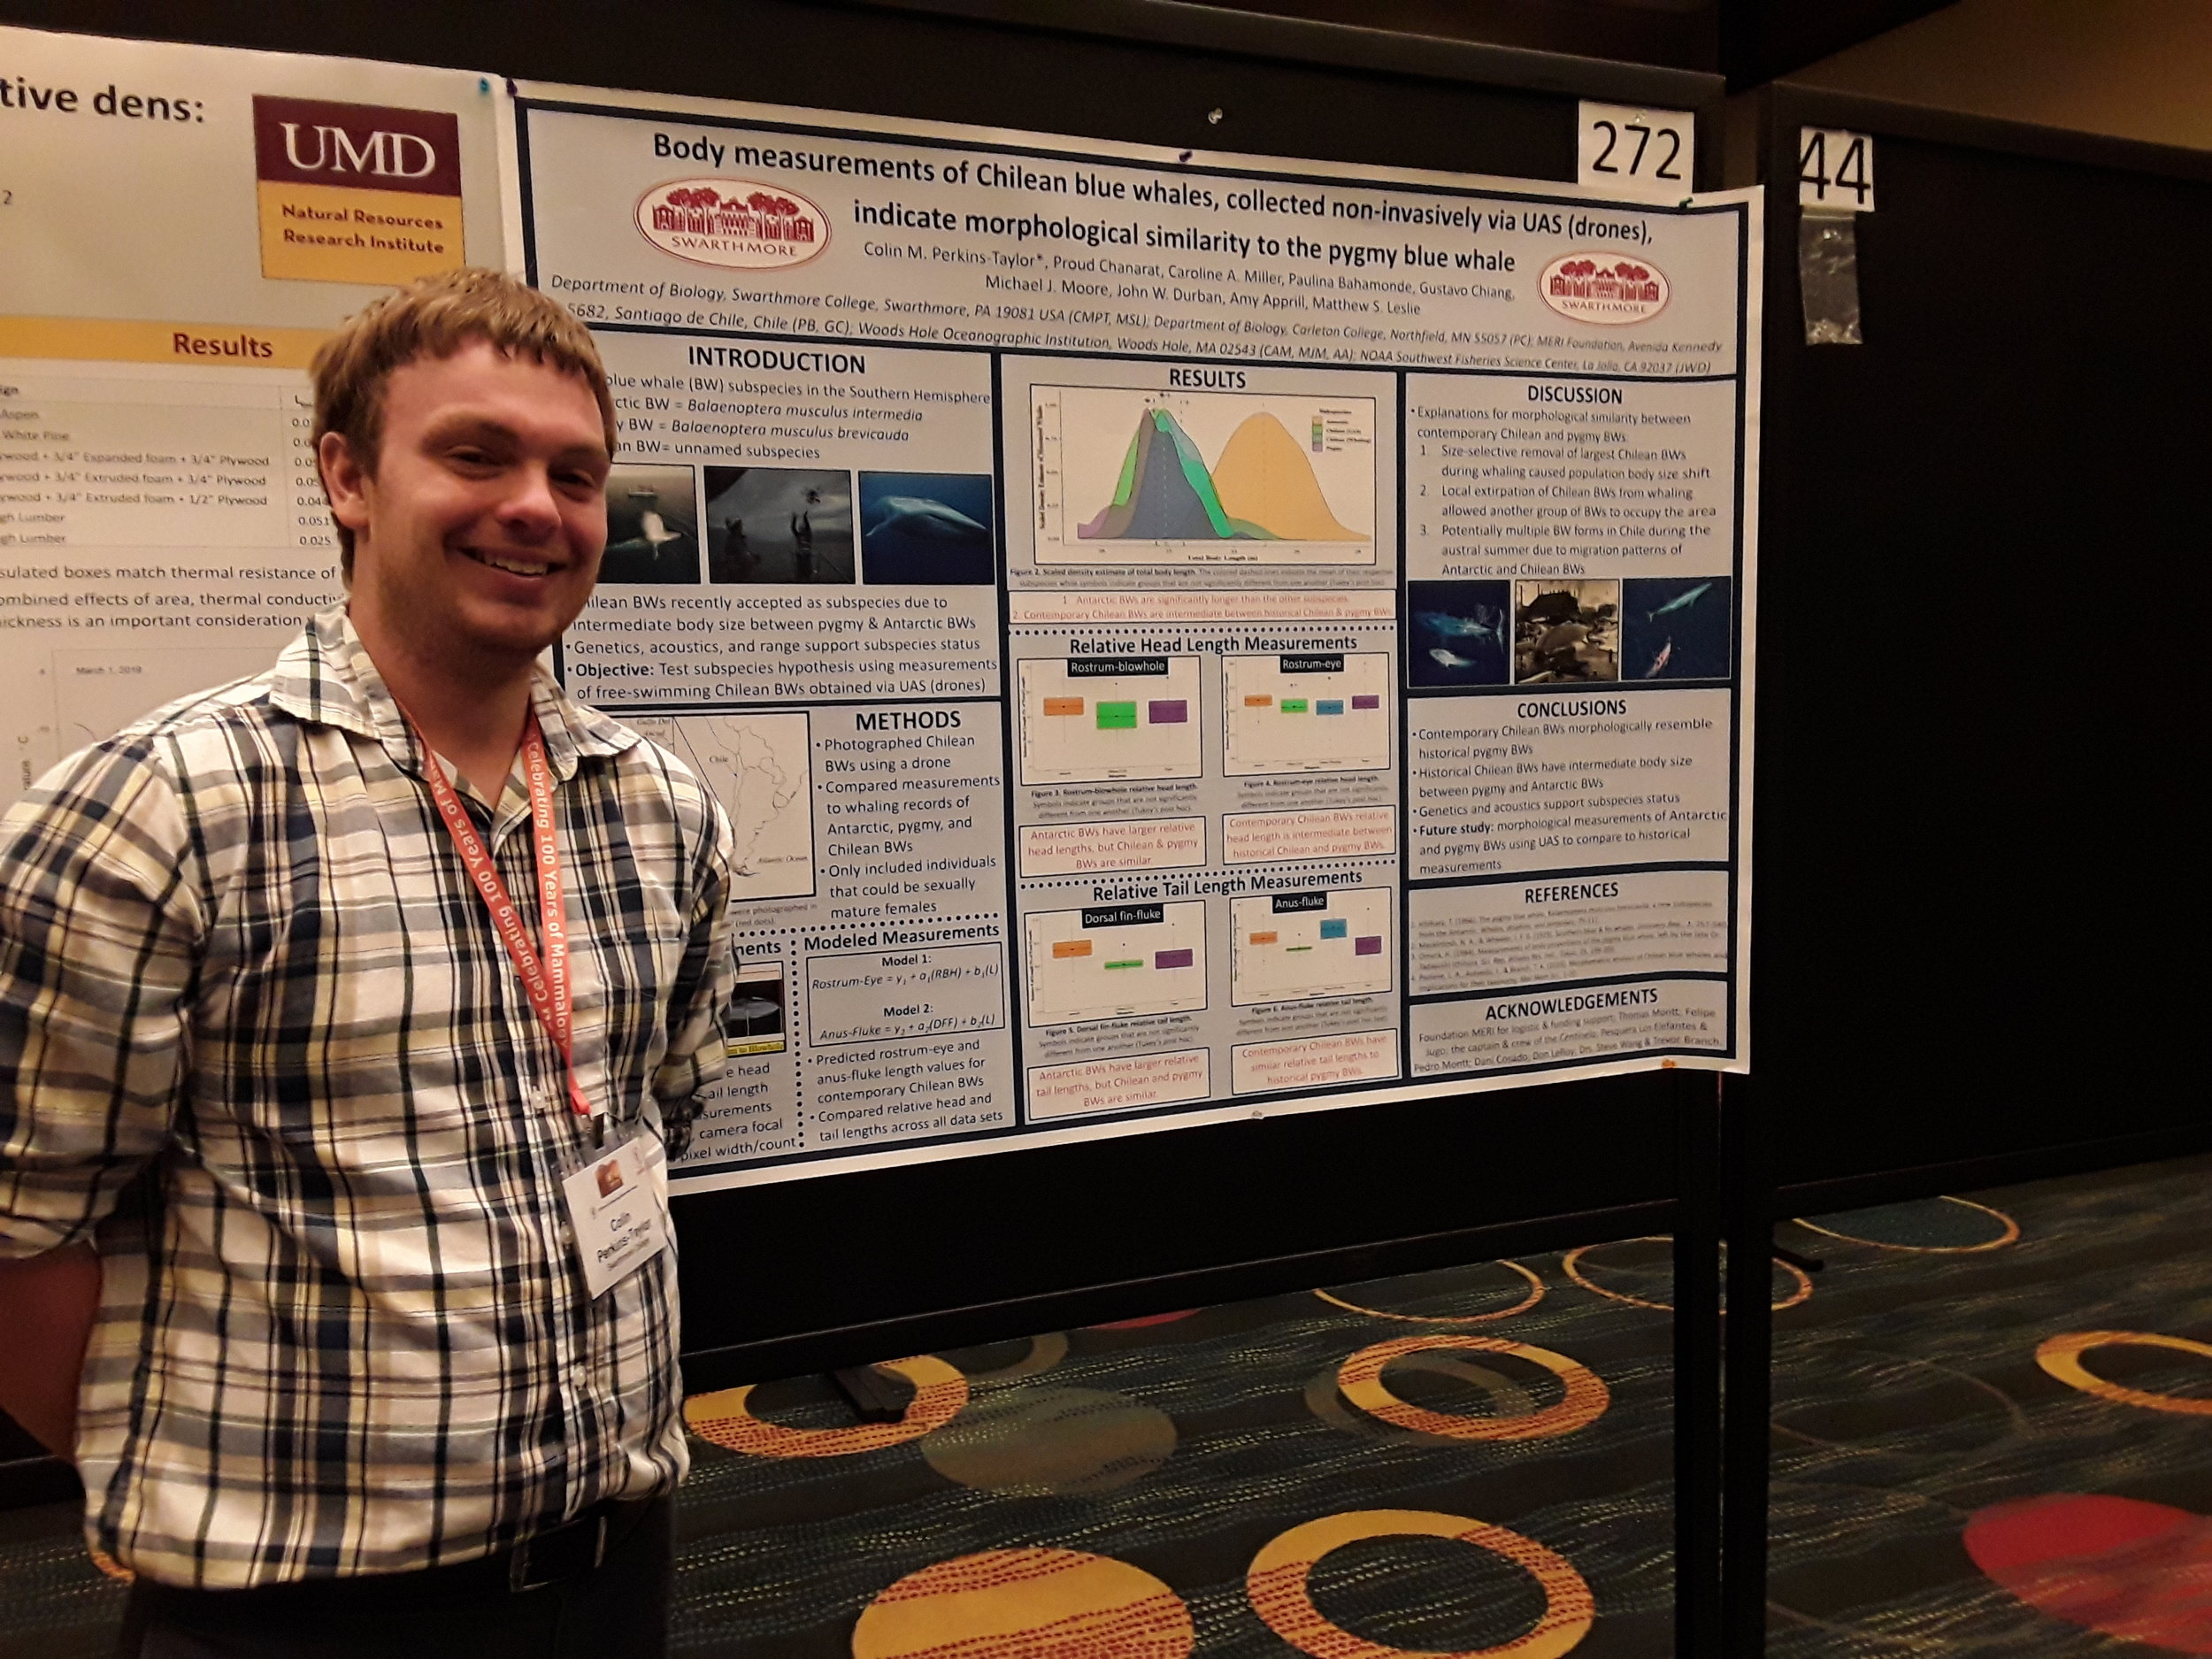 Colin Perkins-Taylor - Colin presented a poster at ASM on blue whale research he and I are currently writing up for submission. We used drones to measure Chilean blue whales and compare these measurements to whaling records to determine if the Chilean group is unique. Great Work Colin!!